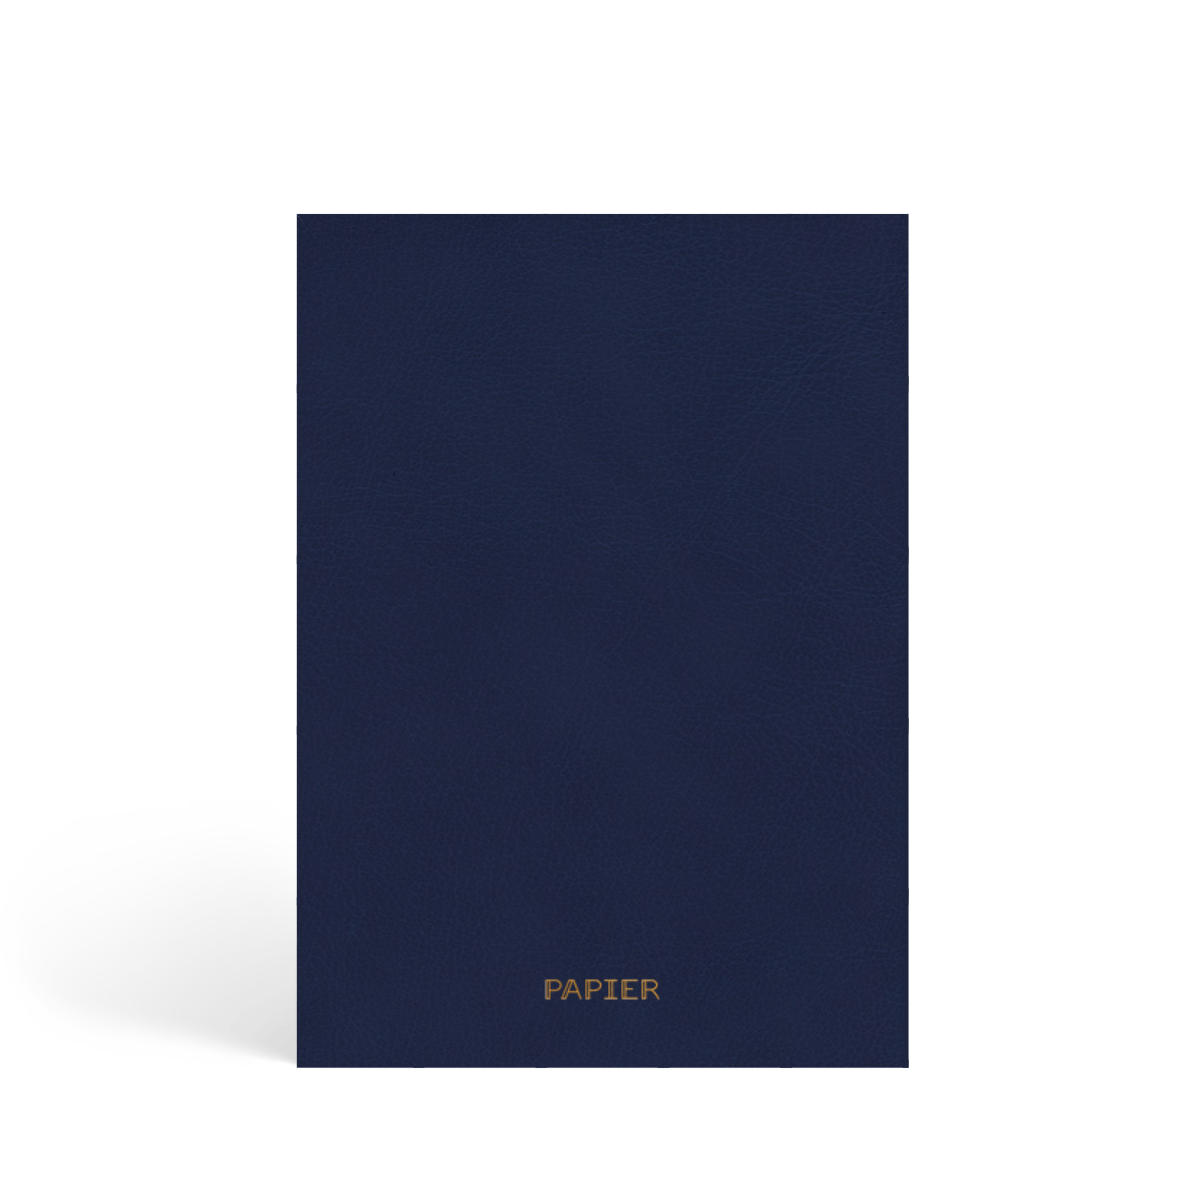 Https%3a%2f%2fwww.papier.com%2fproduct image%2f95530%2f5%2froyal blue monogram 23949 back 1573495929.png?ixlib=rb 1.1